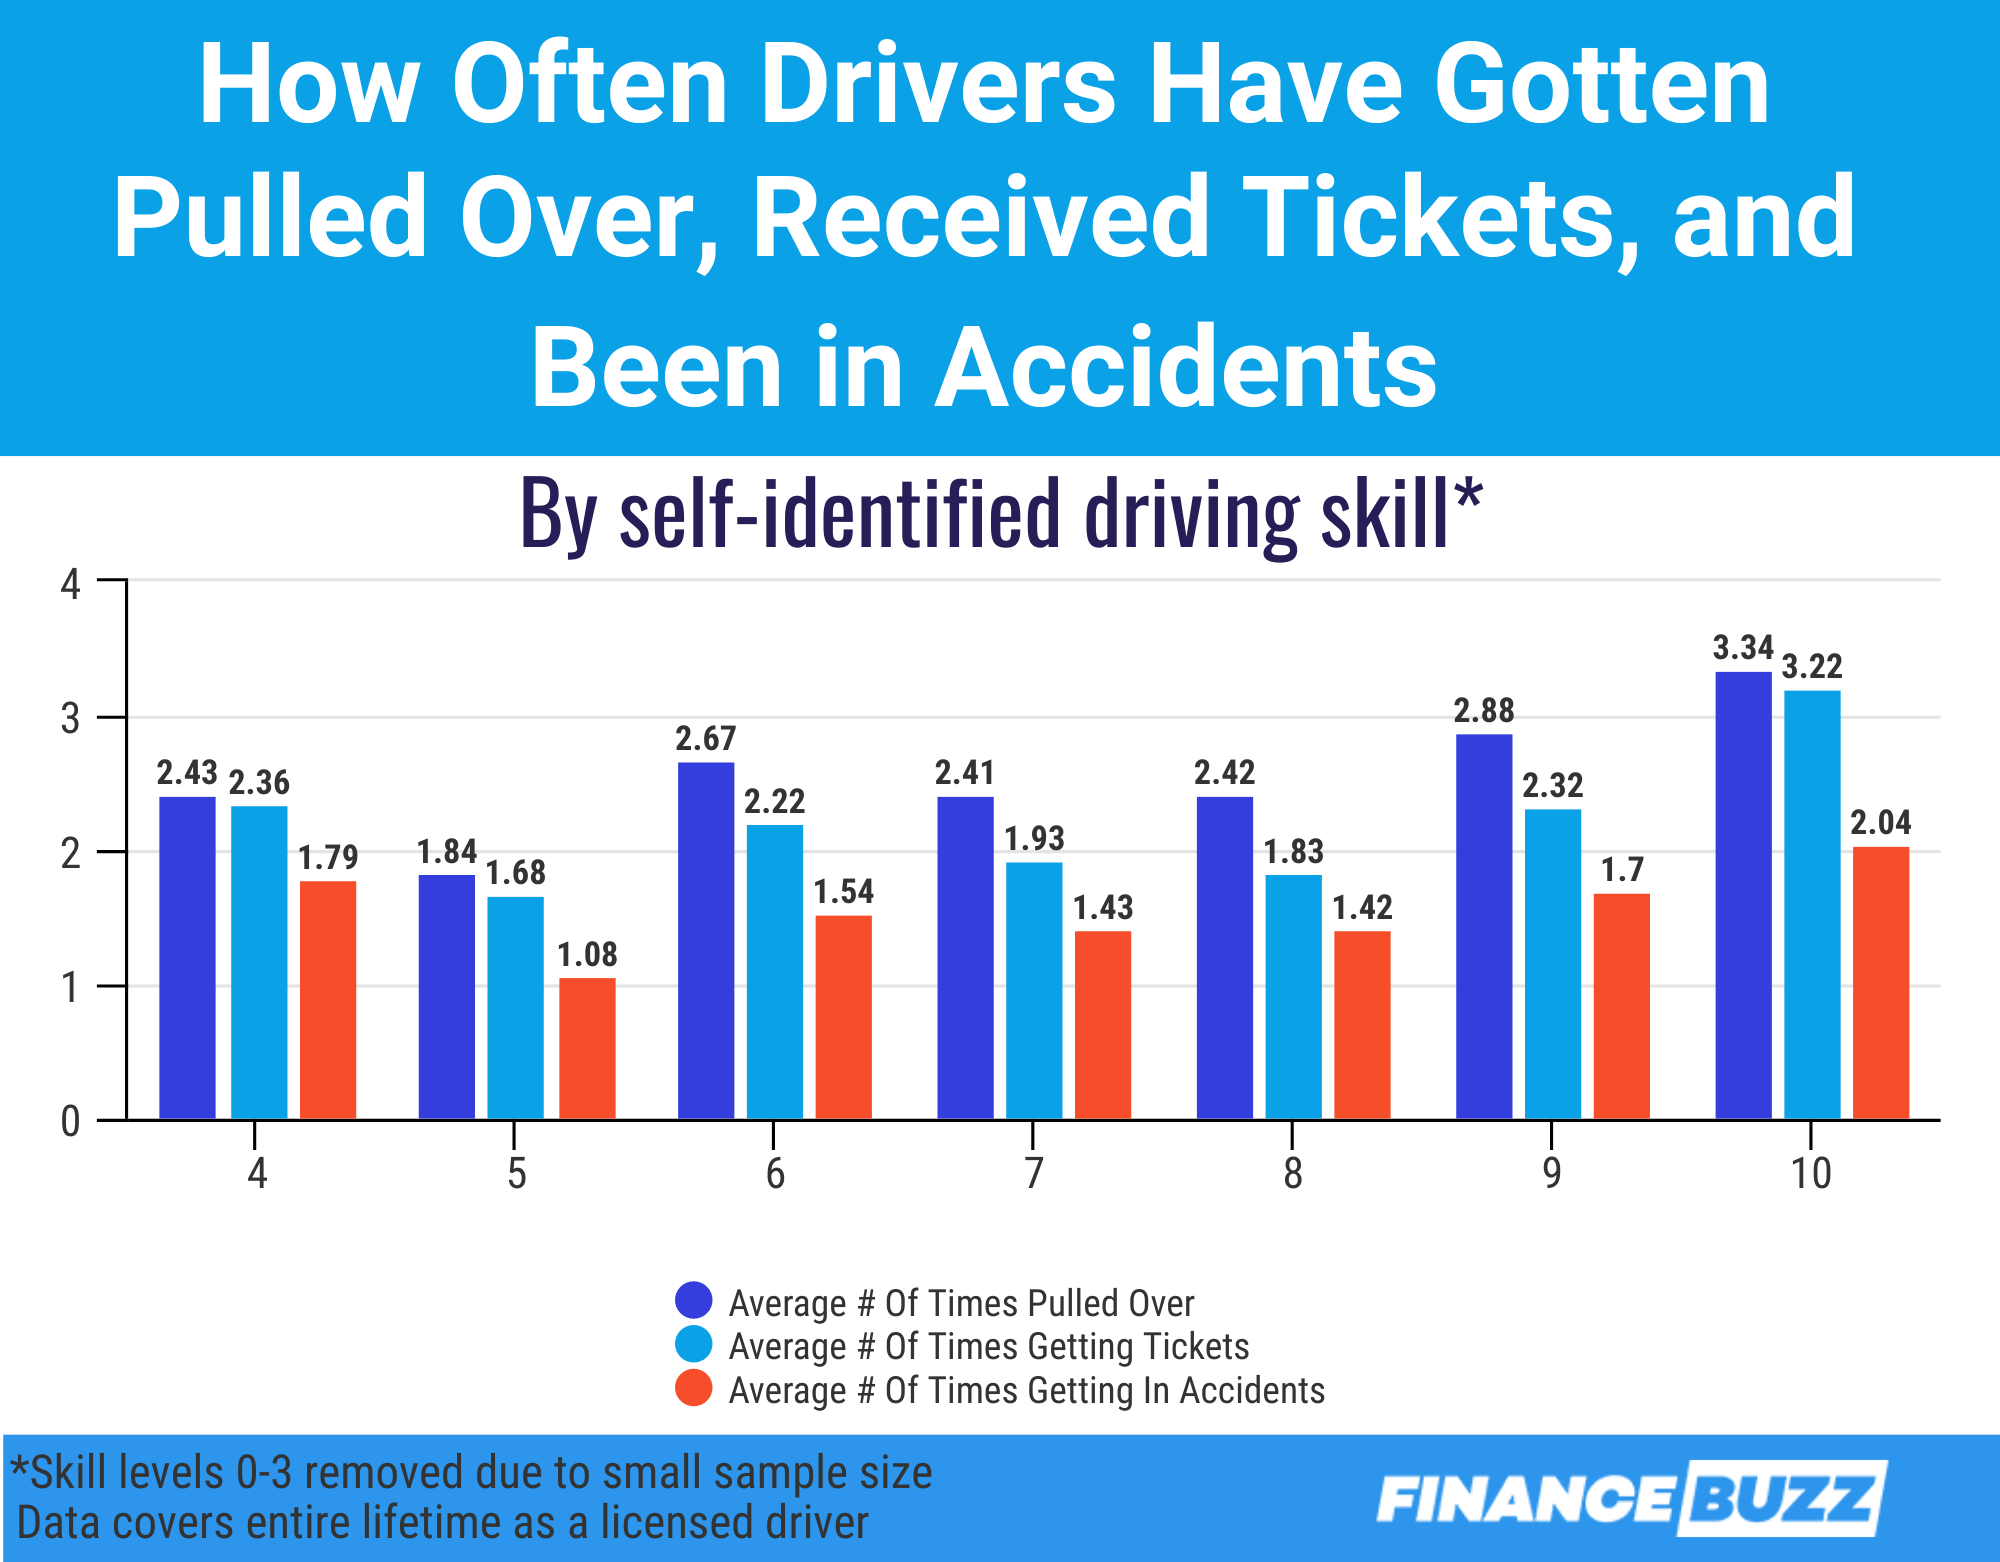 Graphic showing how often drivers of different skill levels have gotten tickets and been in accidents